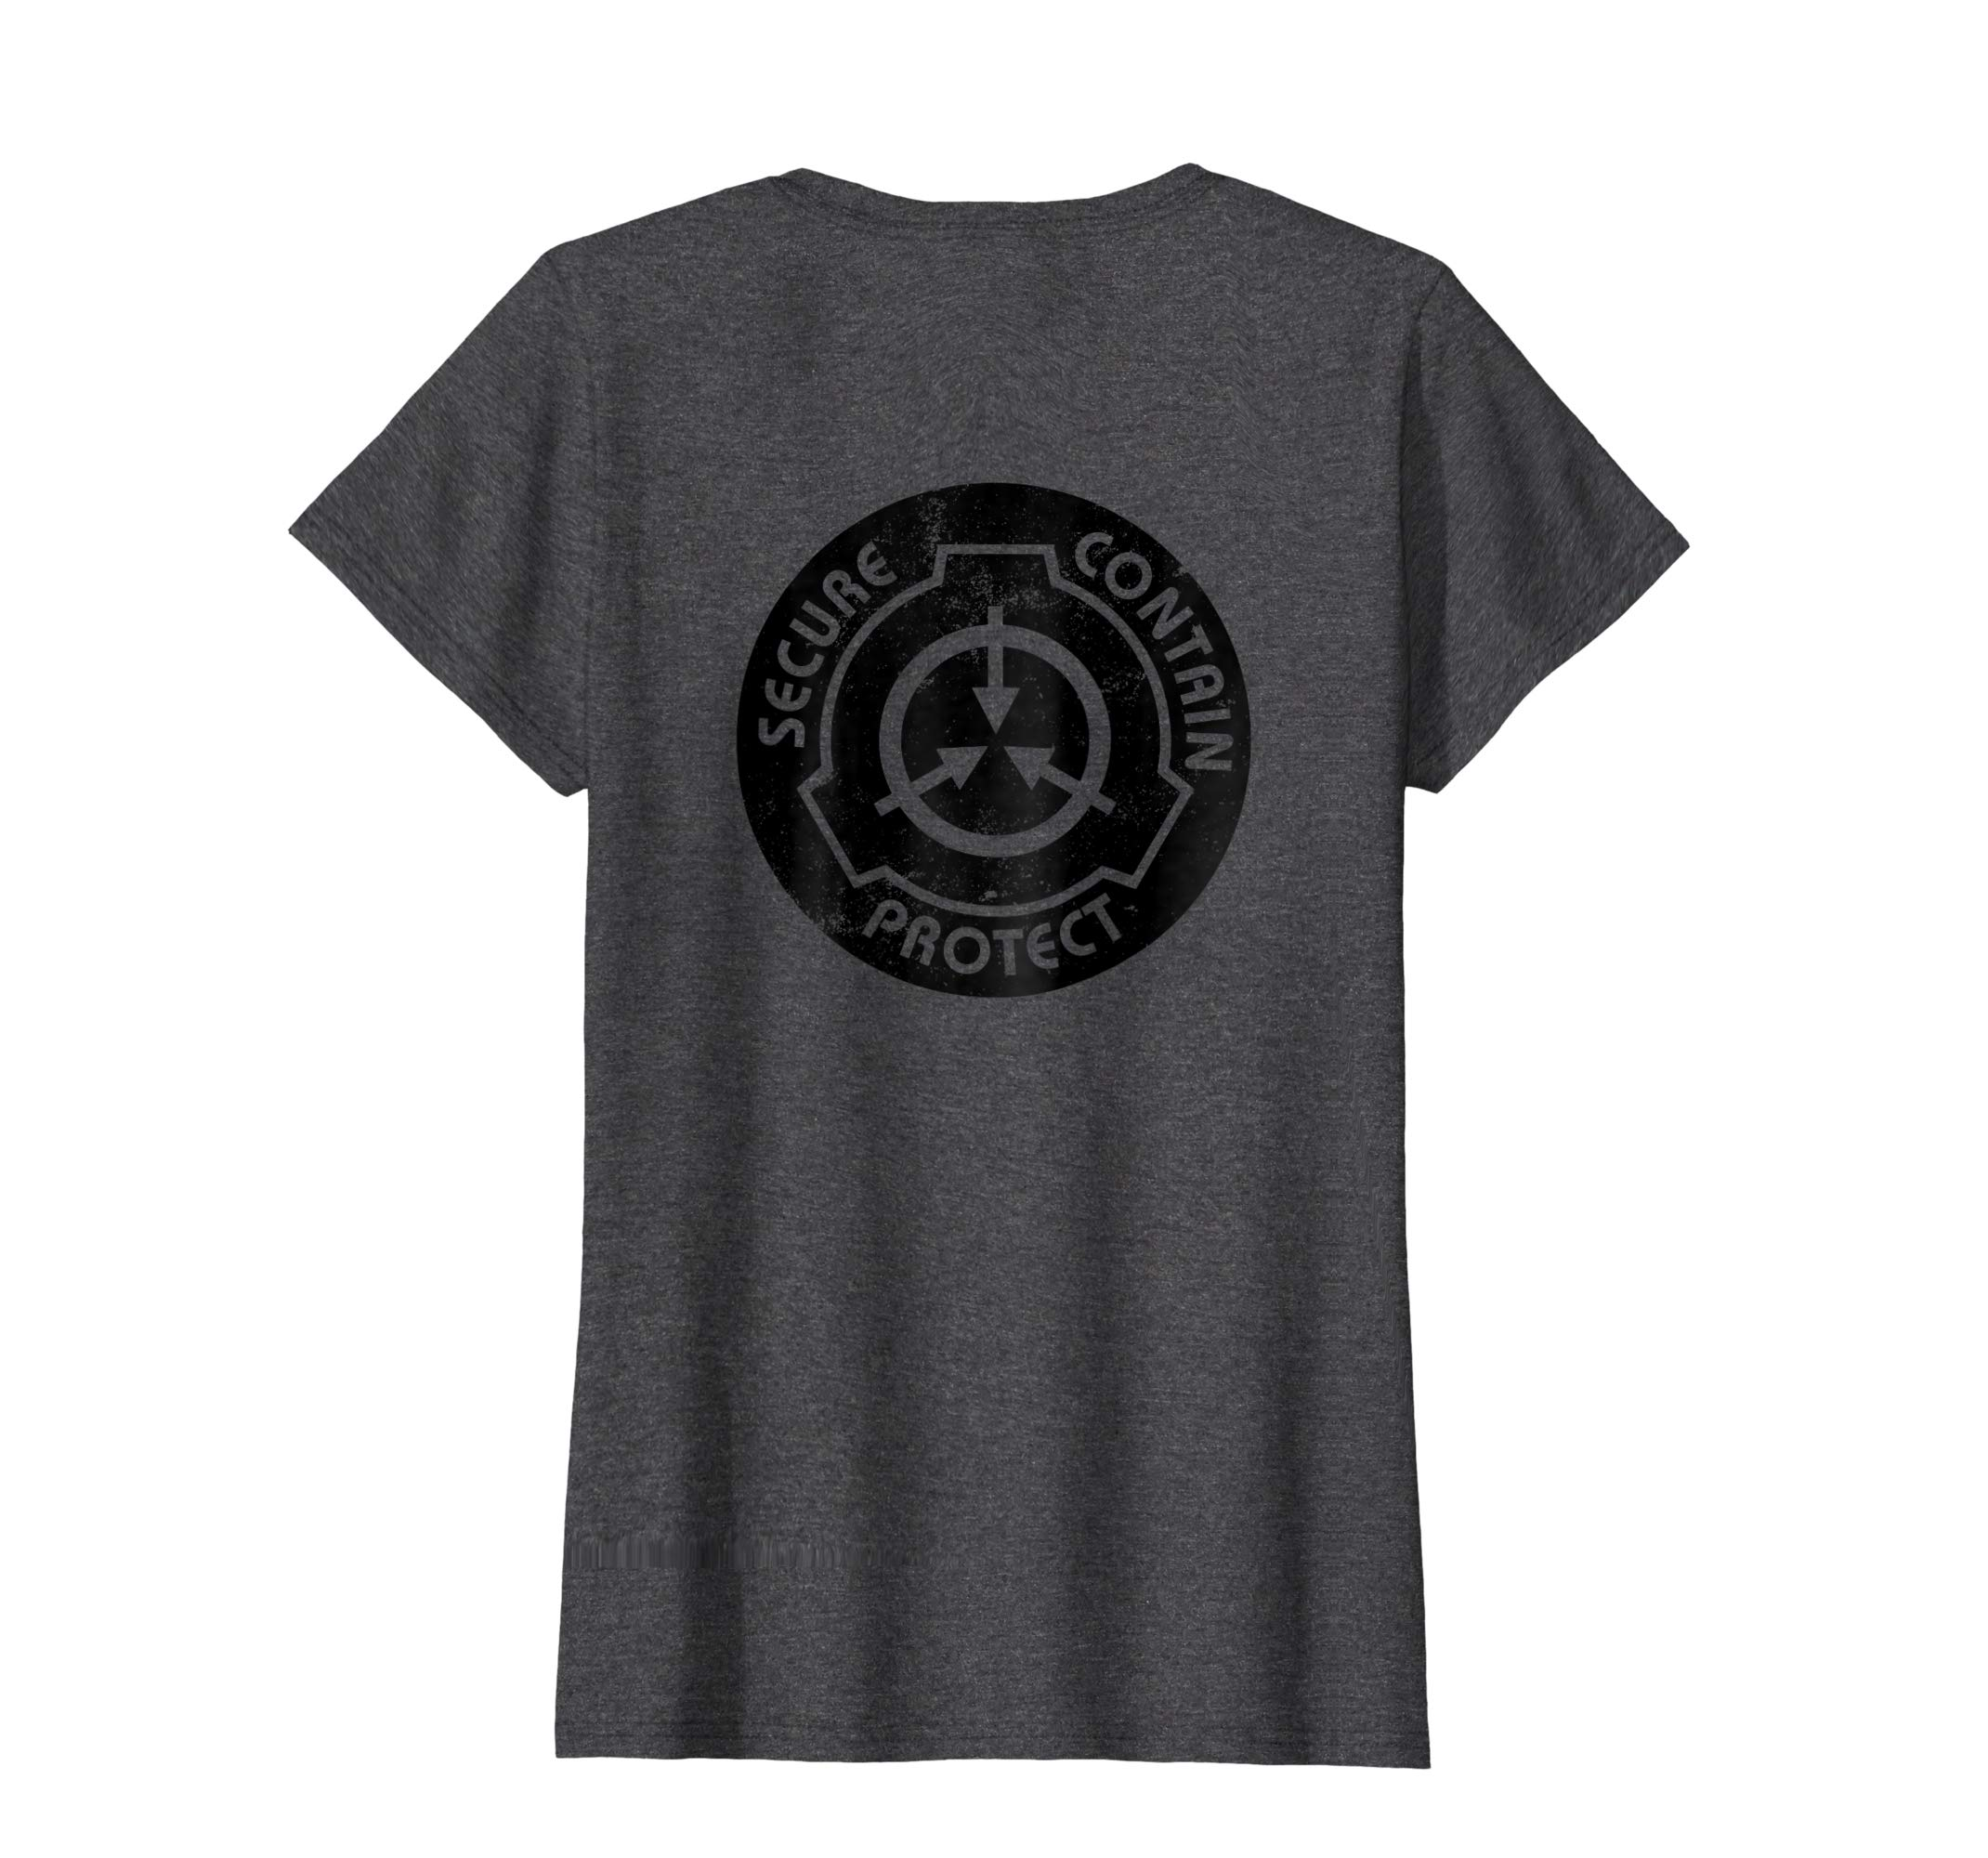 Amazon.com: SCP Foundation Logo Tshirt: Clothing.